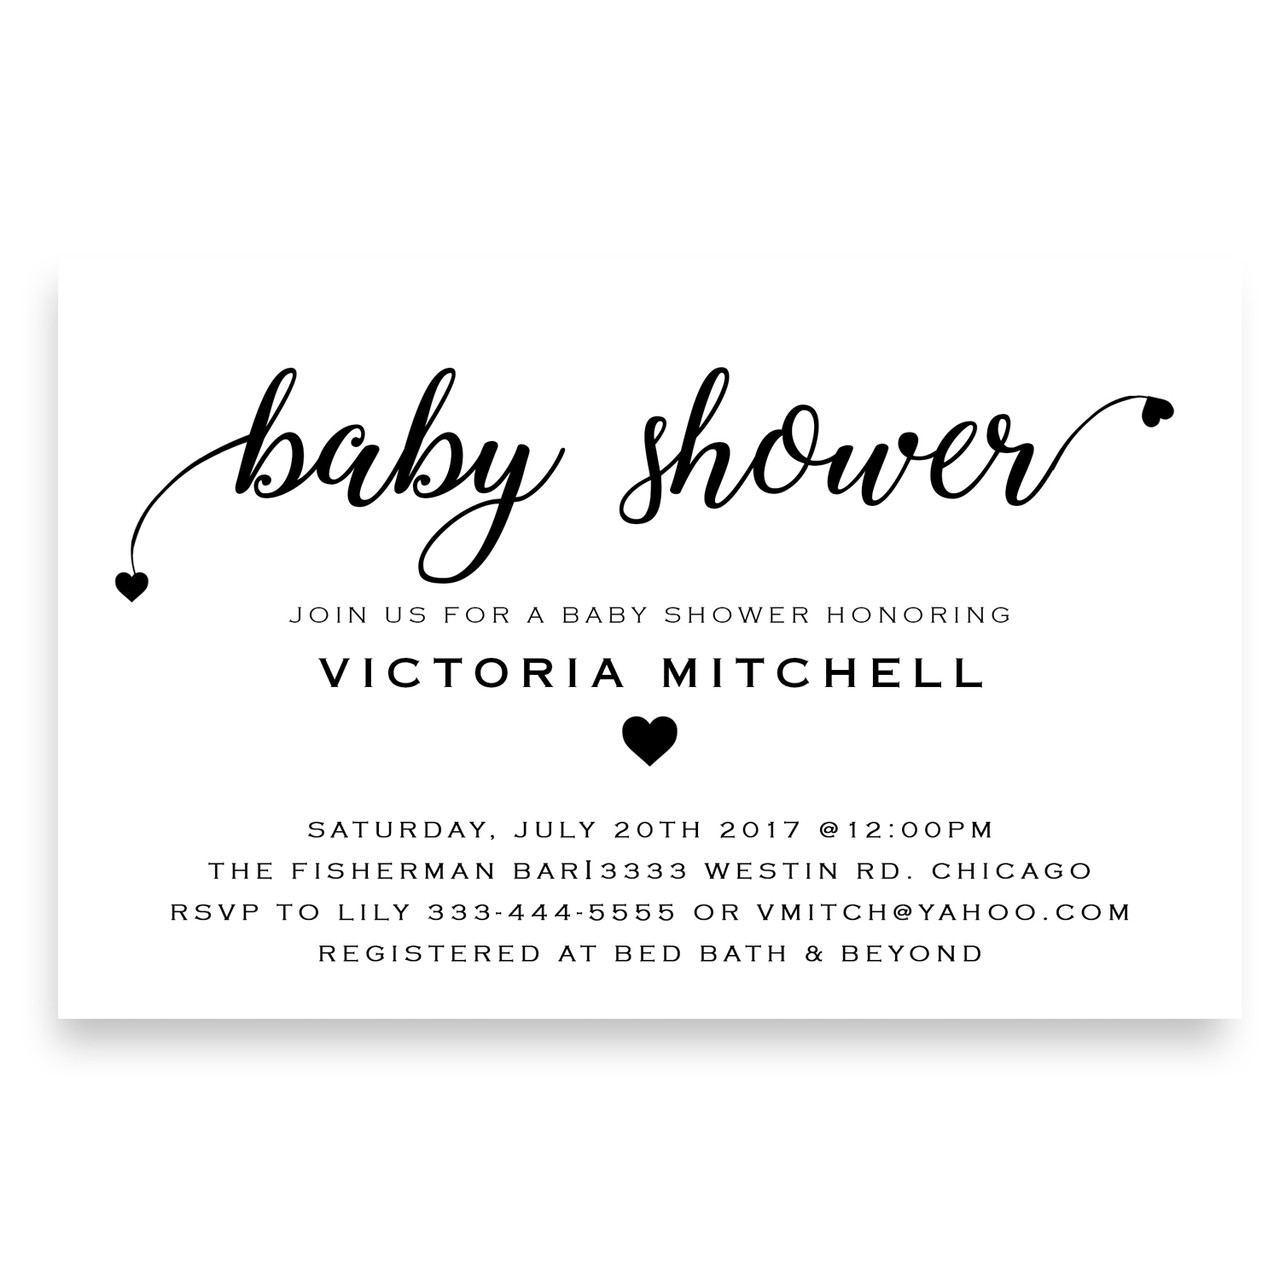 Love and hearts, baby shower invitation